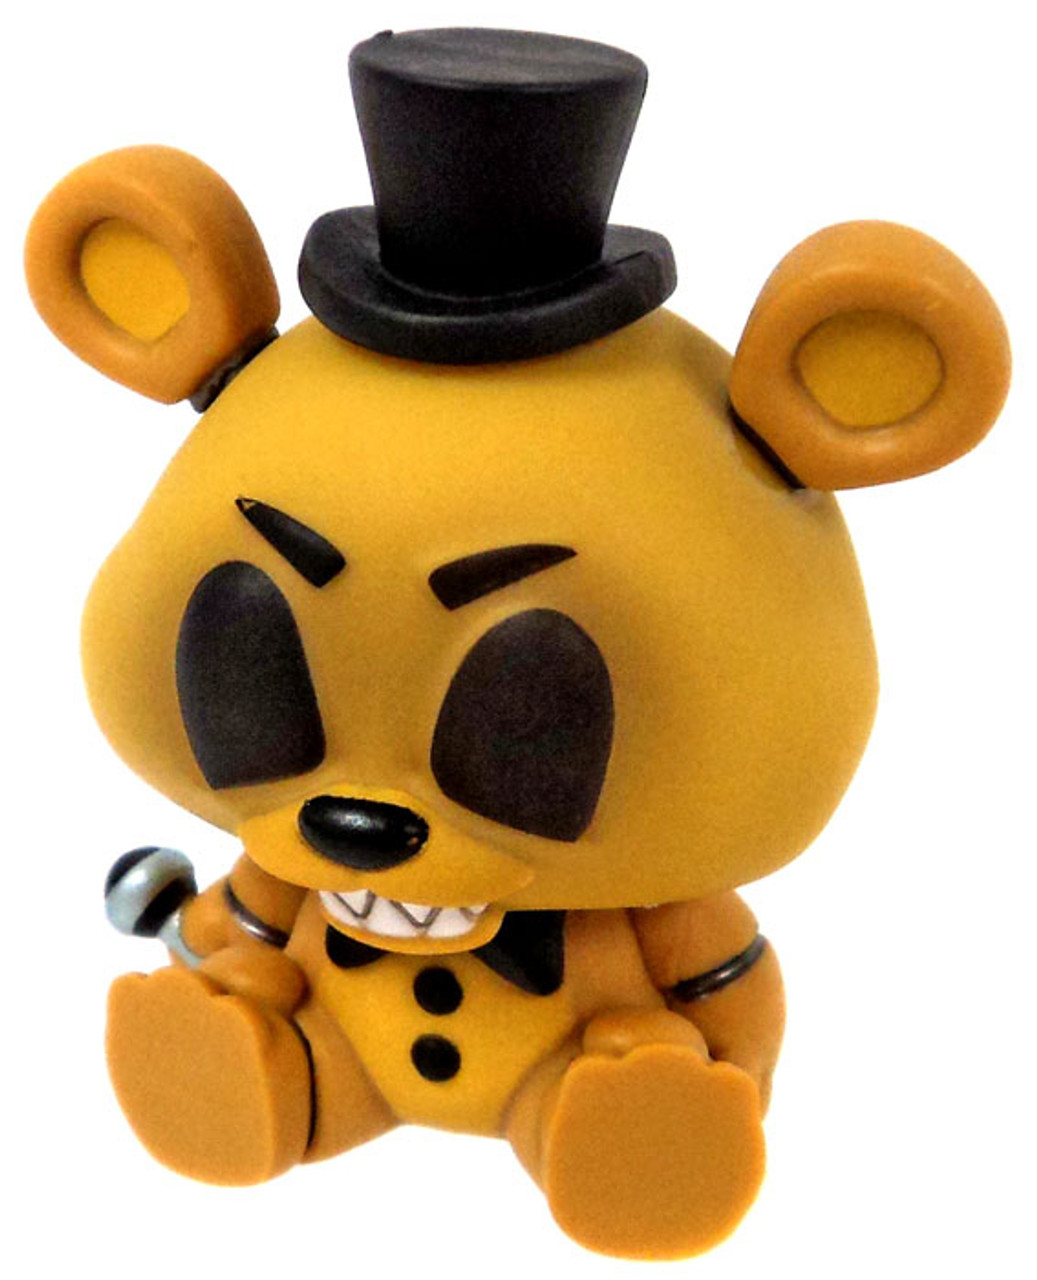 Funko Five Nights At Freddys Mystery Minis Golden Freddy Fazbear 112 Minifigure Loose